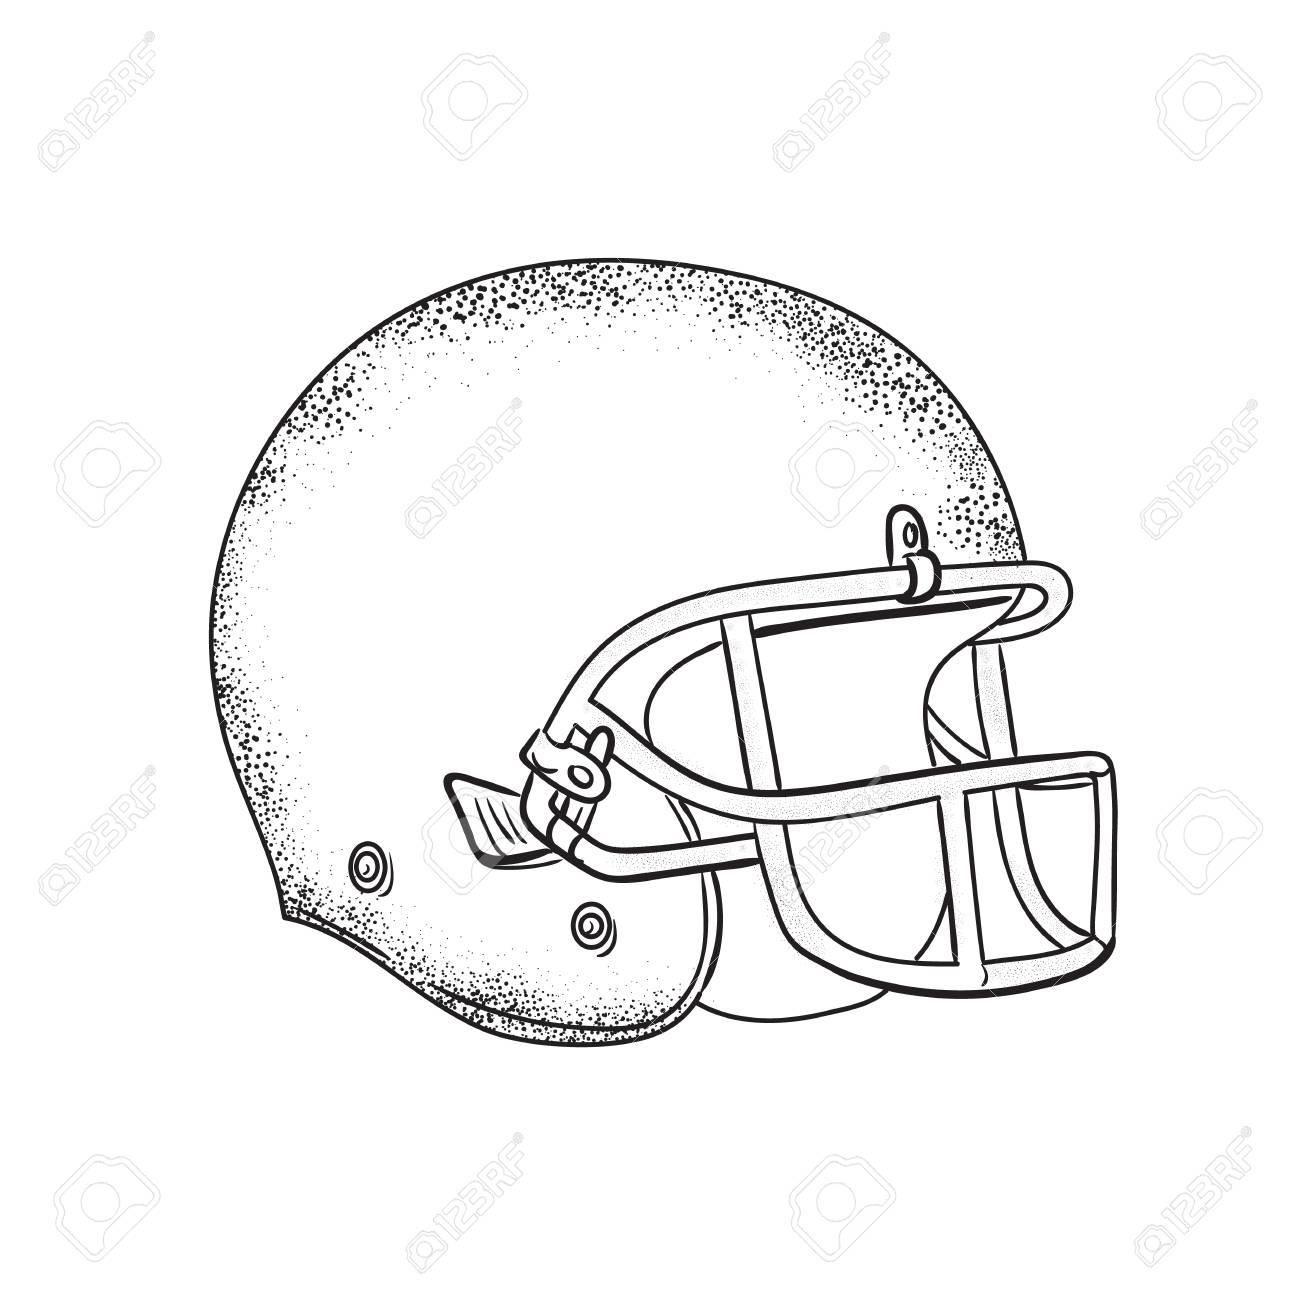 Drawing Sketch Style Illustration Of An American Football Helmet